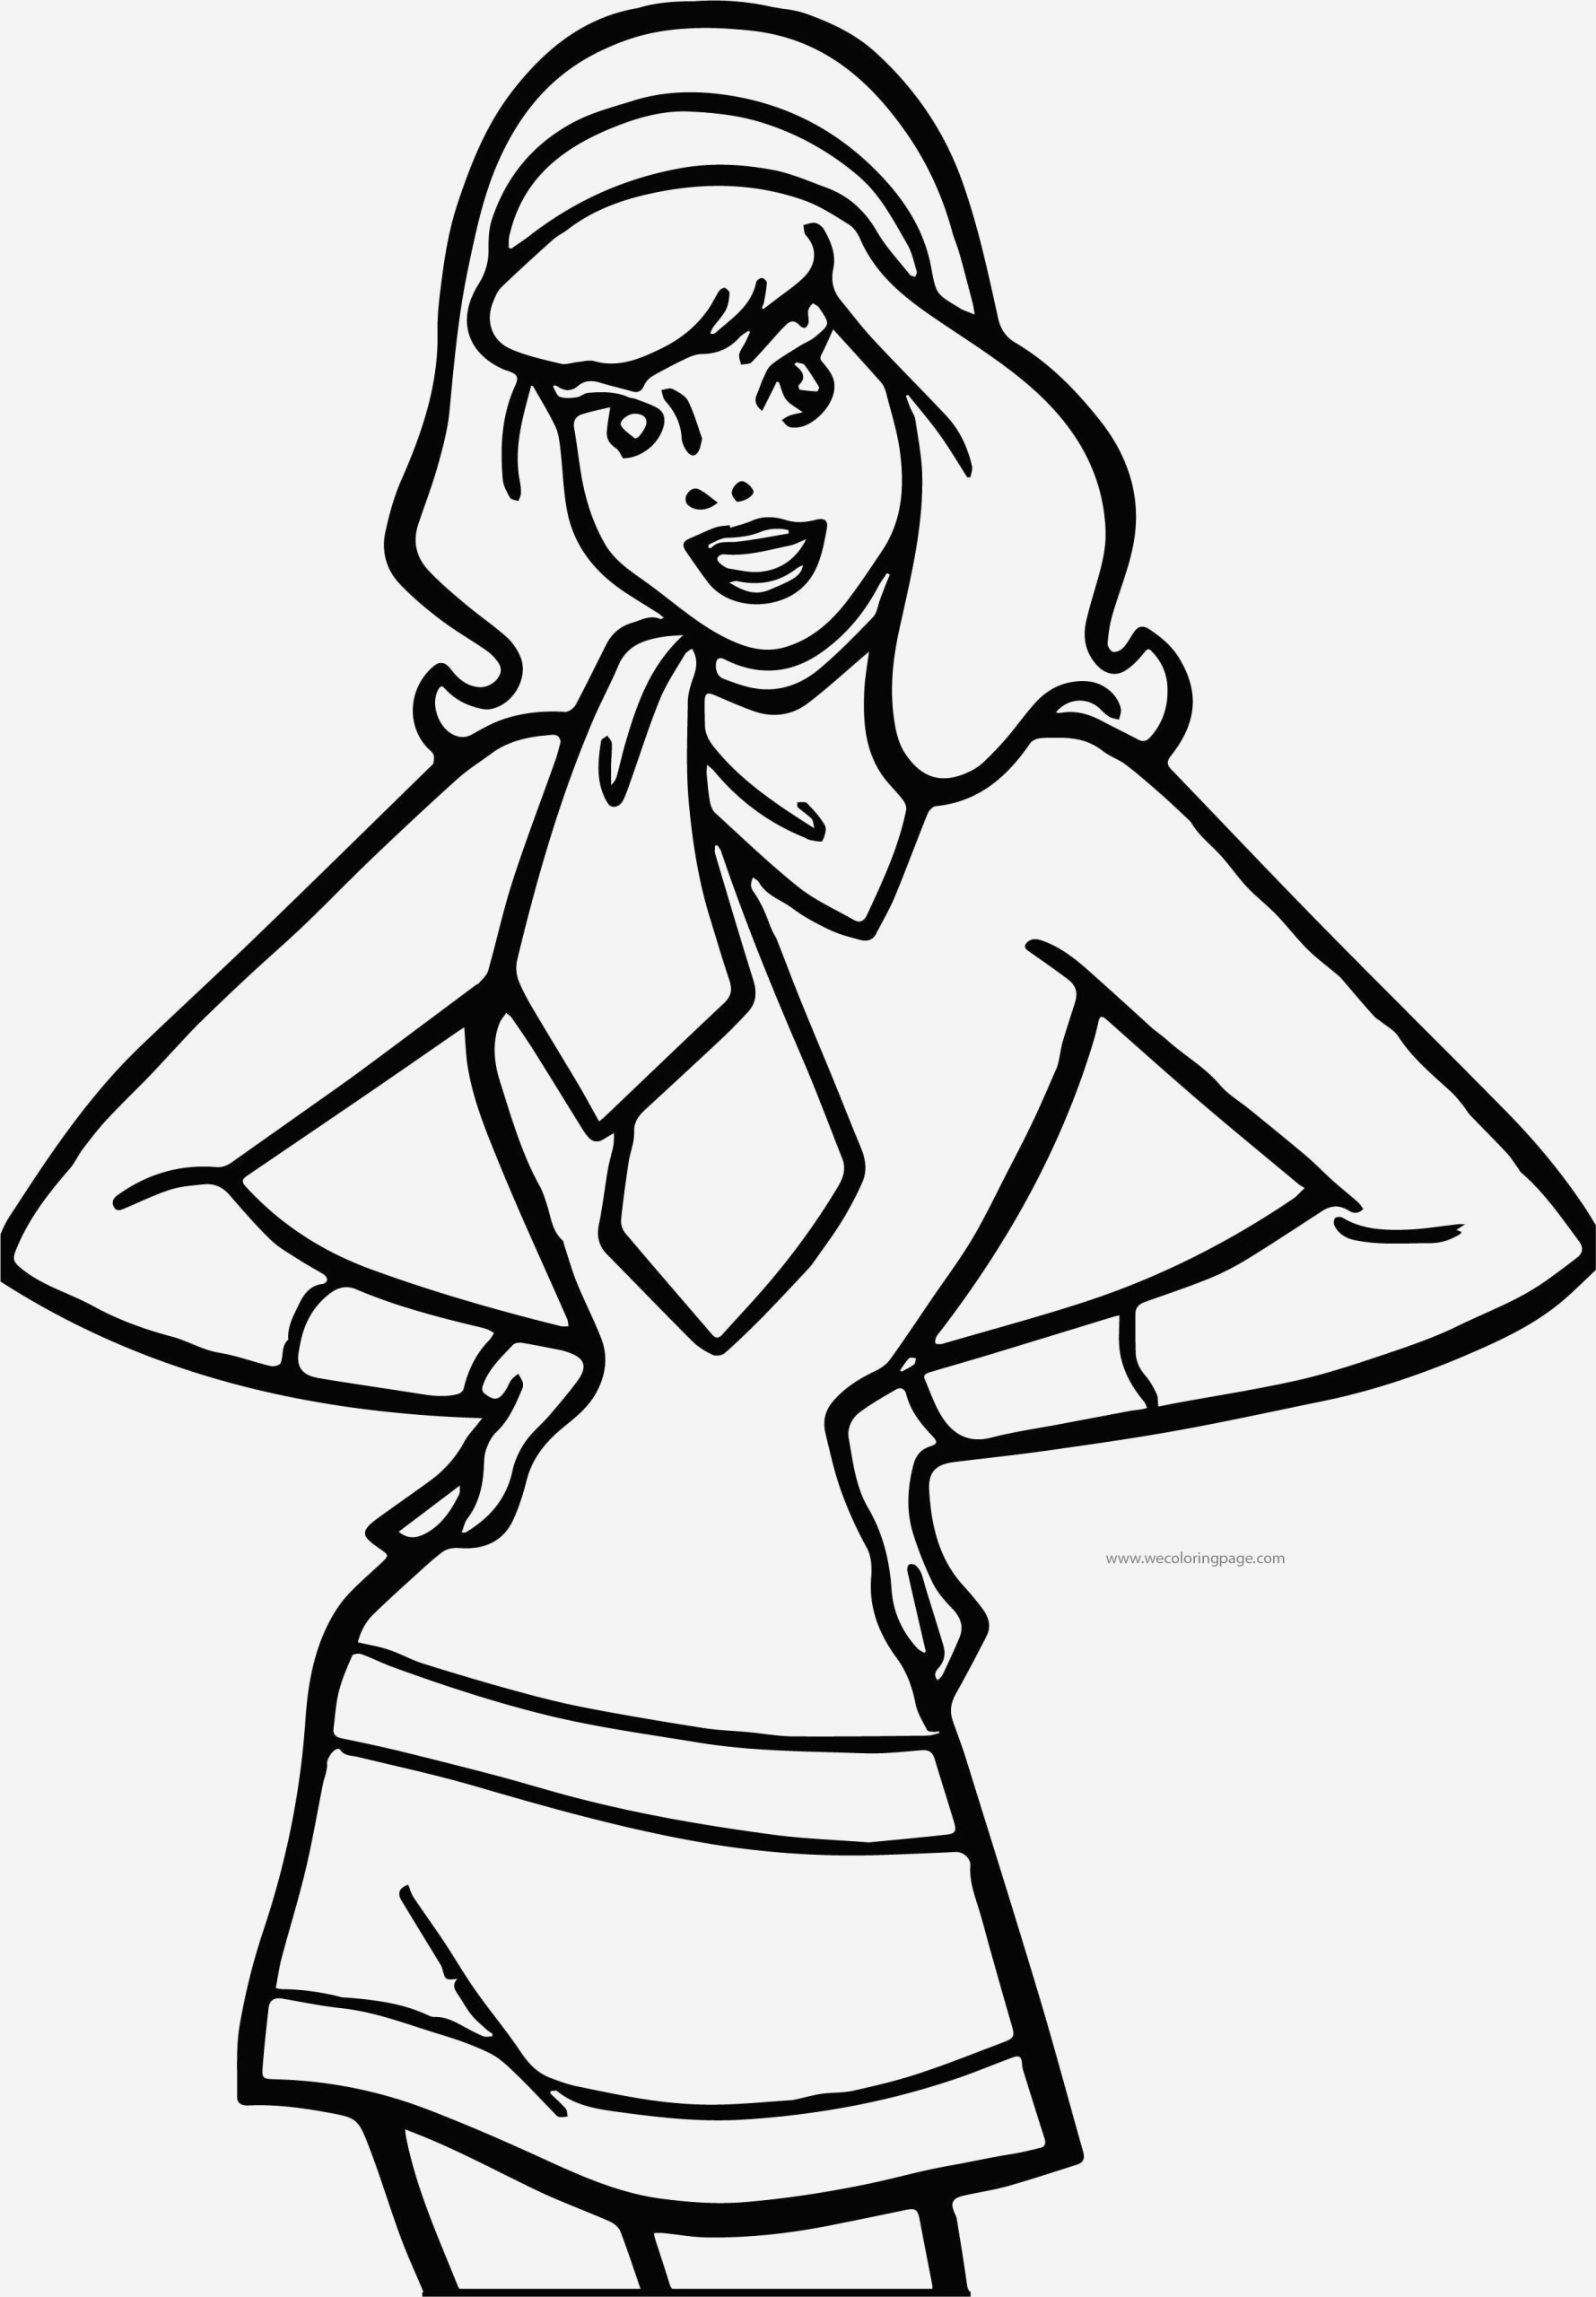 Coloriage Scooby Doo Awesome Pages Coloring Pages Coloring Excelent Scooby Doo Sheets Of Coloriage Scooby Doo